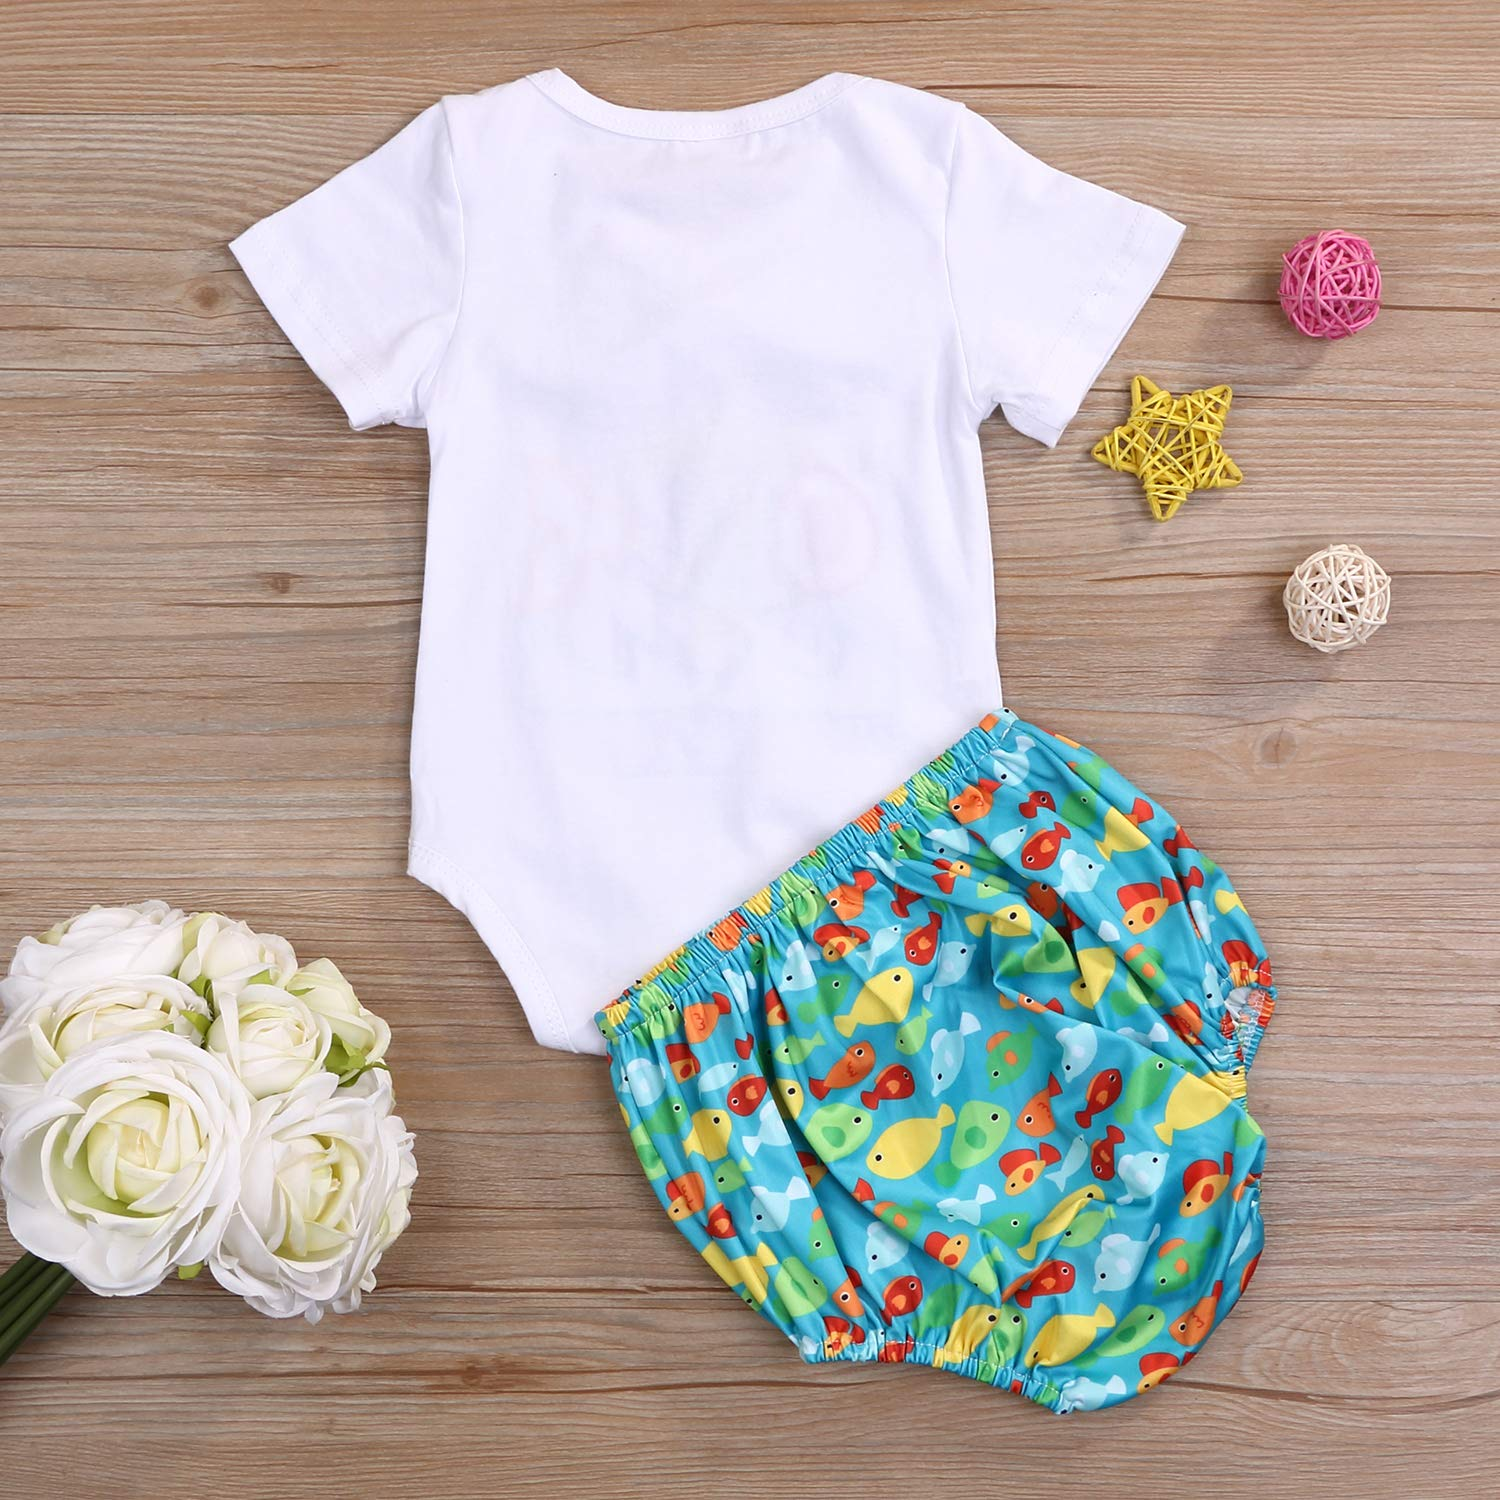 O-Fish-Ally One Boys First Birthday Outfit Infant Fishing Boy Bow Tie Short Sleeve Romper+Diaper Cover Cake Smash Outfits